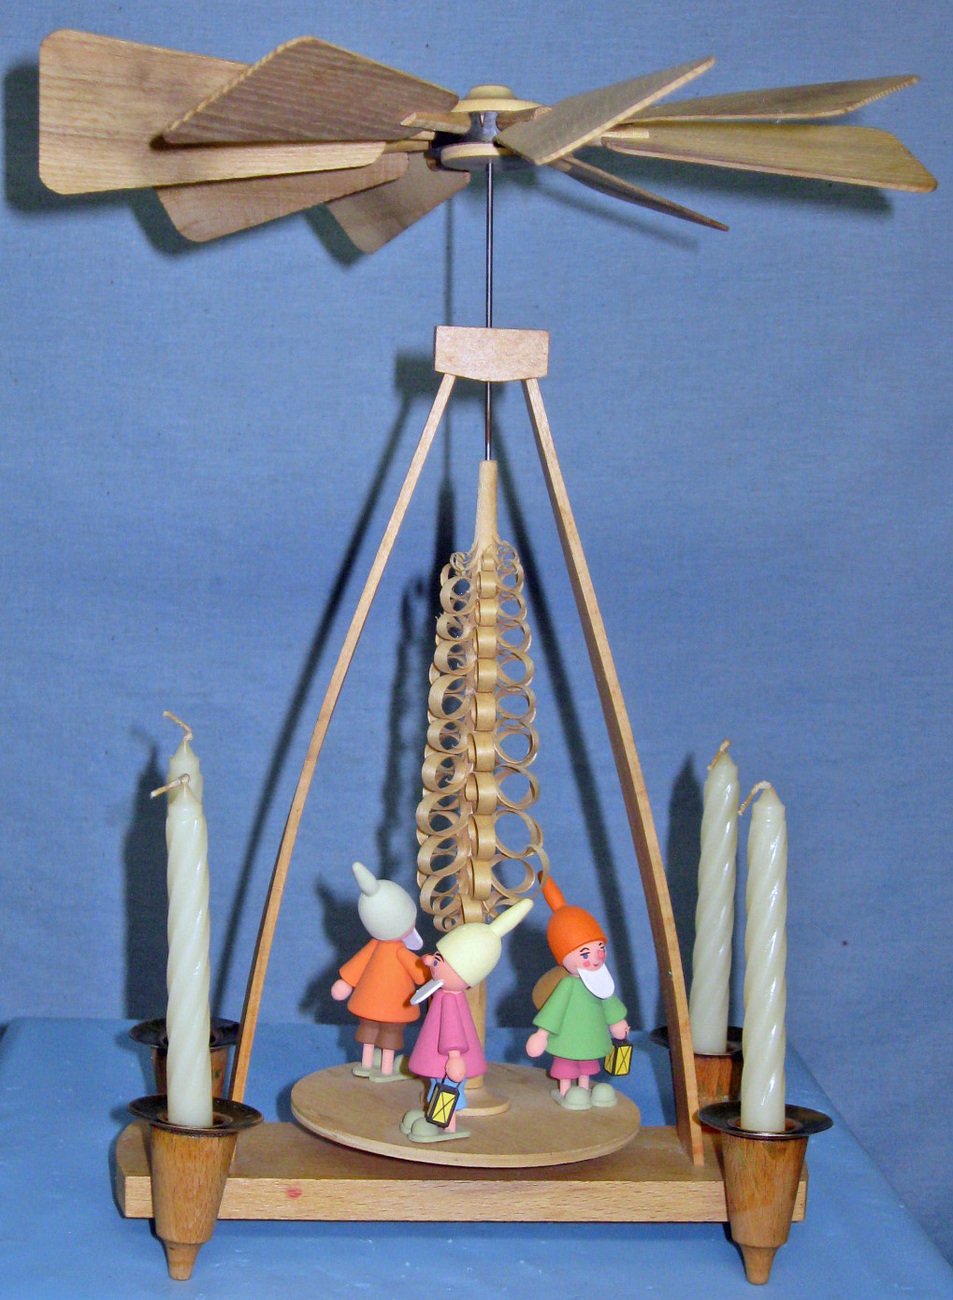 Christmas Wood Carousel - Made in E. Germany (c.1970)